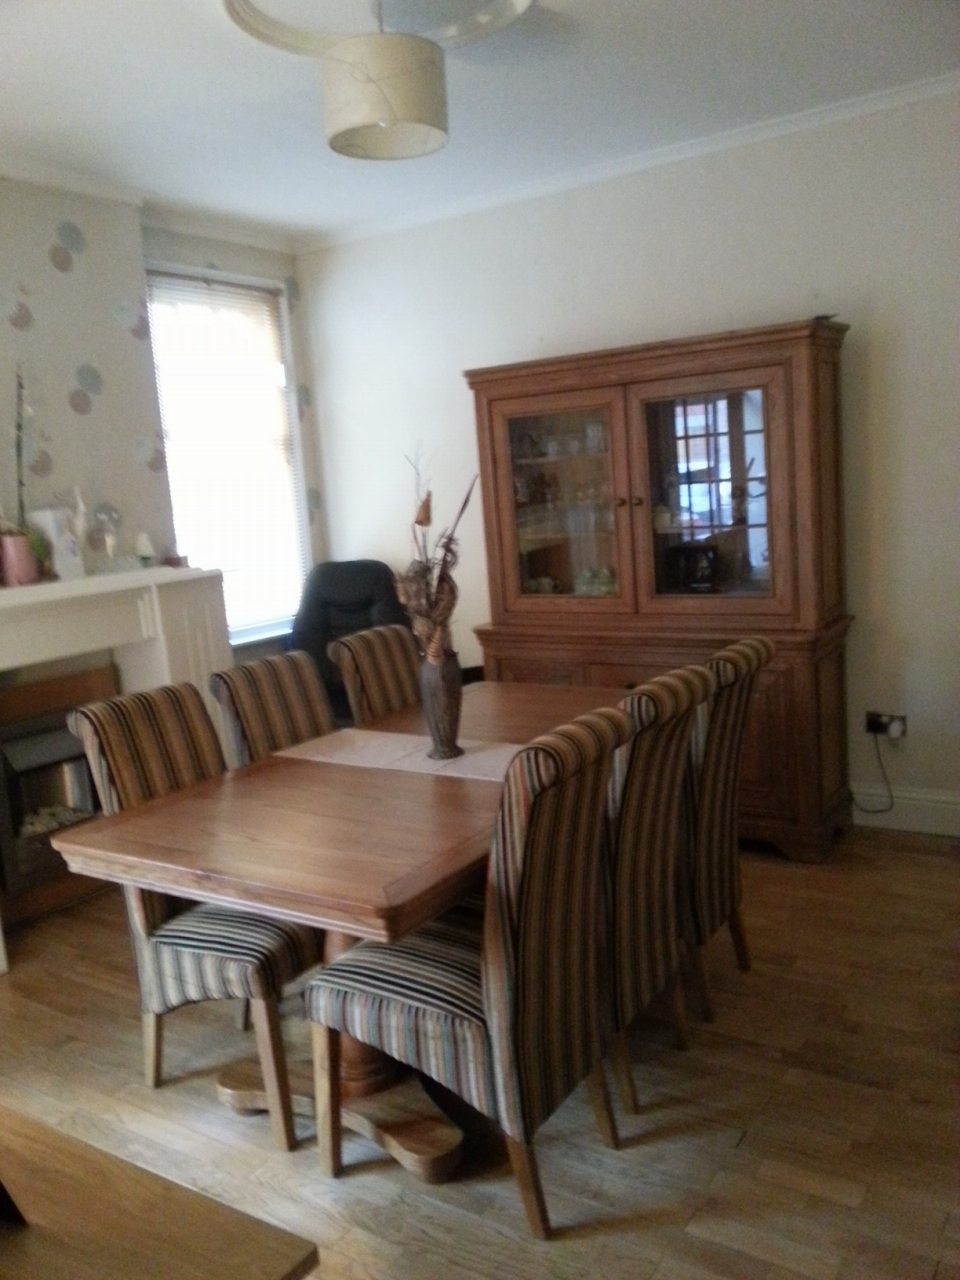 3 bedroom barn conversion house SSTC in Leicester - Photograph 3.